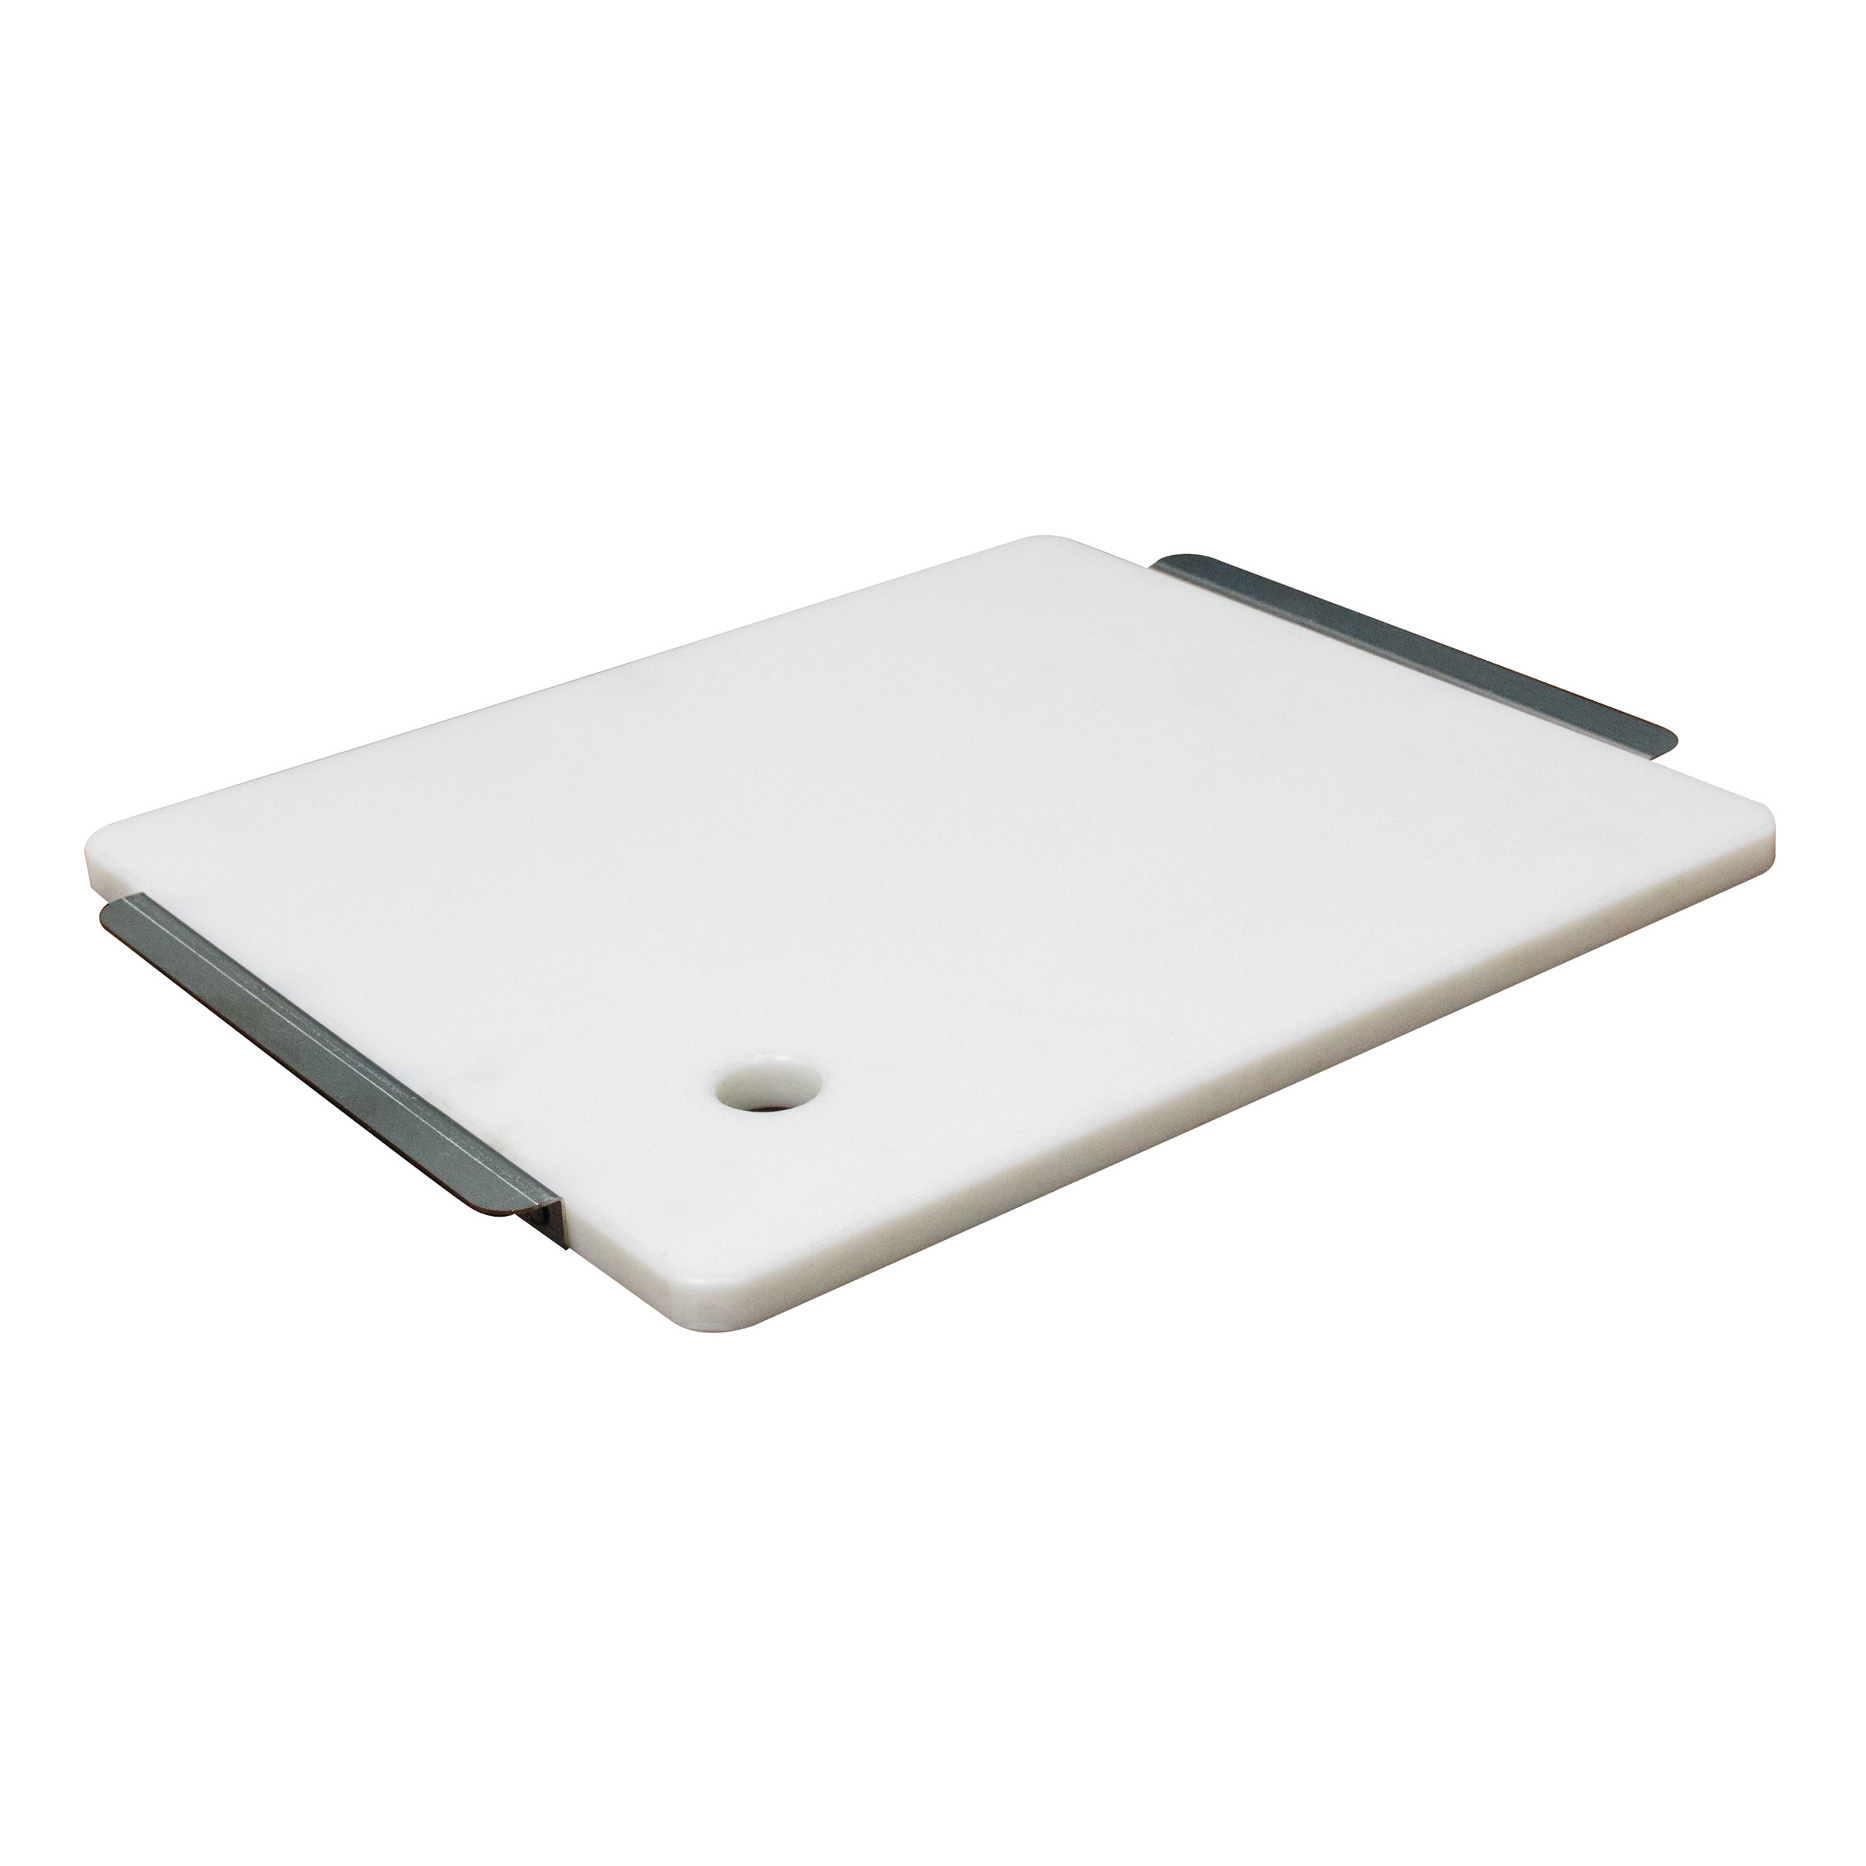 Advance Tabco K-2MF sink cover